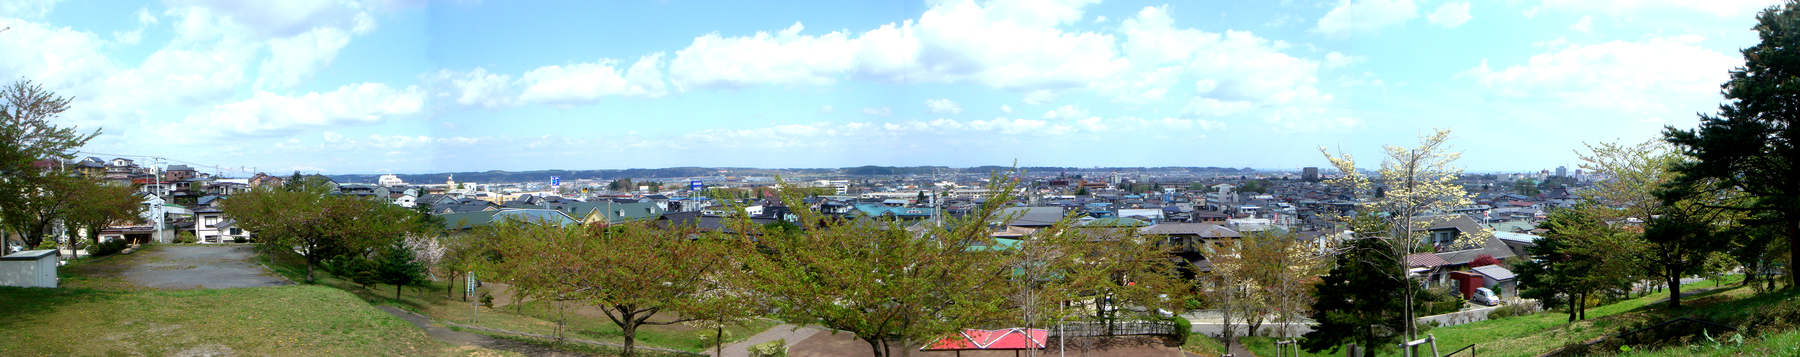 Hachinohe scenery2.png